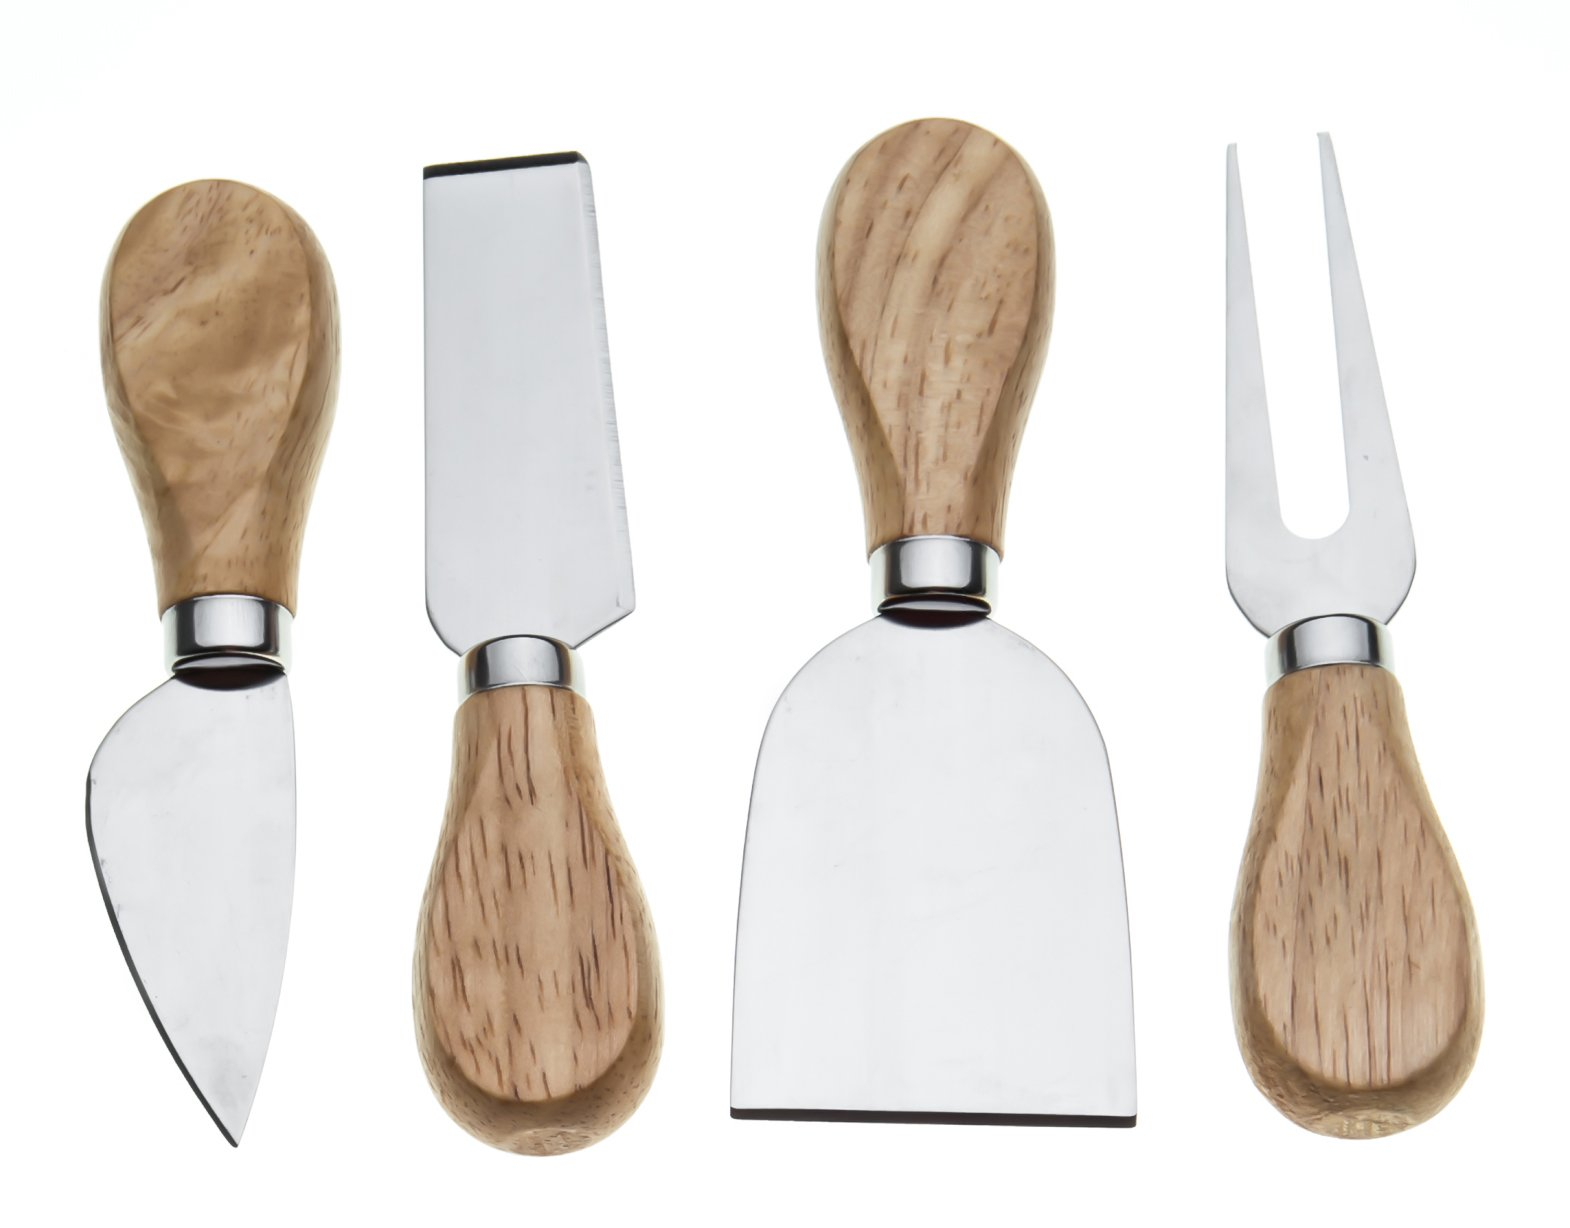 Bekith 4 Pcs Travel Cheese Knives Set, Cheese Knife, Shaver, Fork and Spreader, Wooden Handle